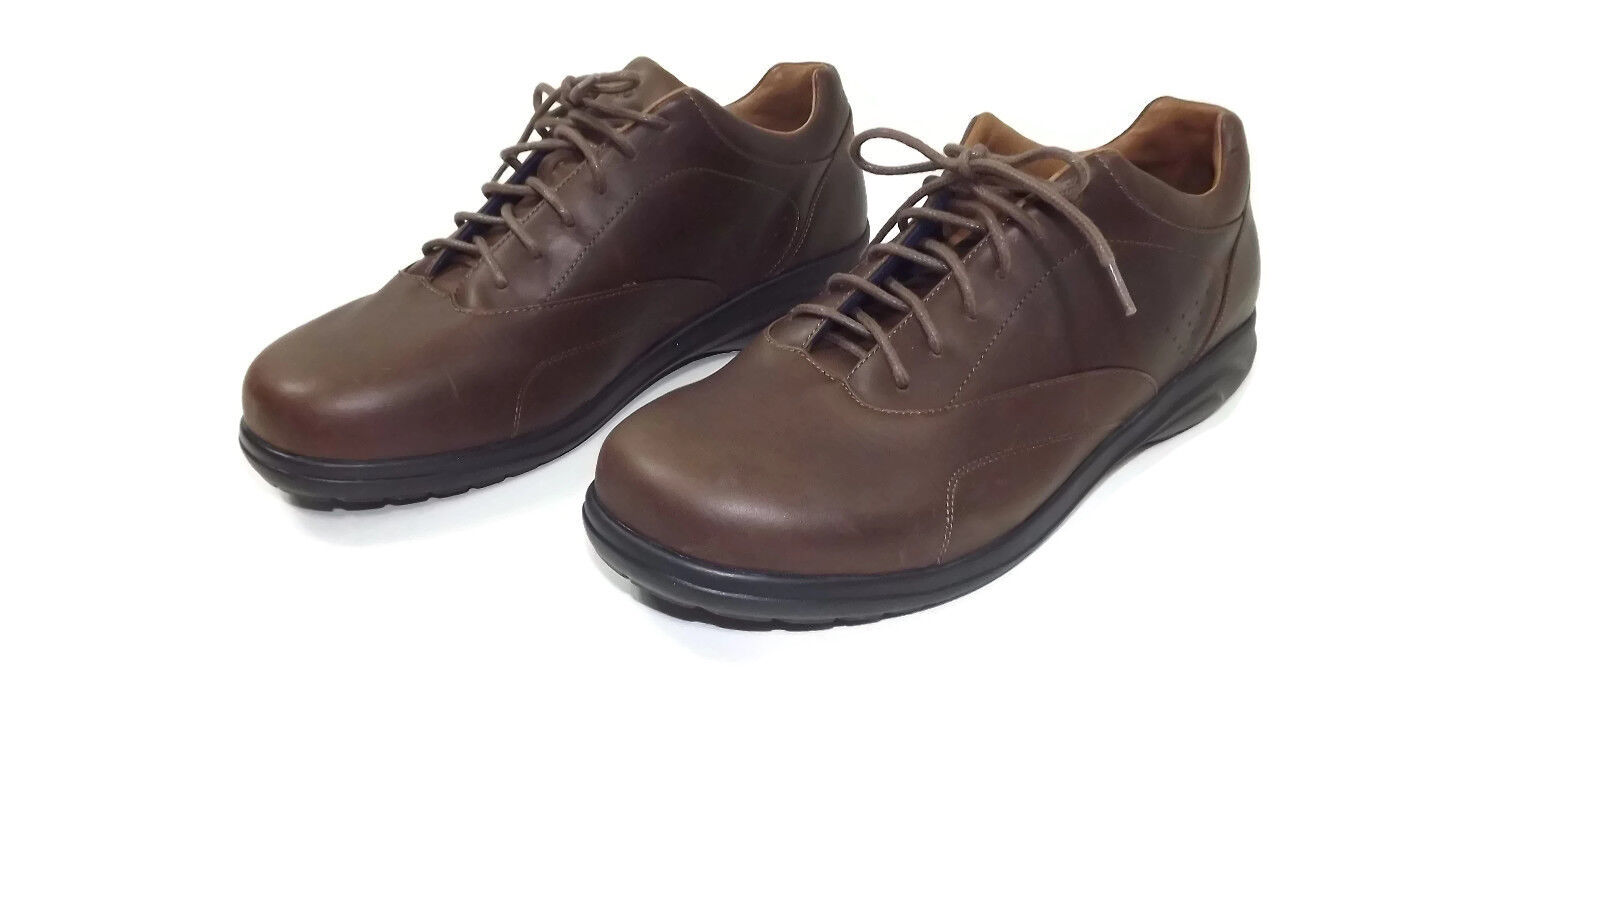 Oasis Uomo Brown Oxfords Quality Soft Full Grain Pelle Size 11 W Wide